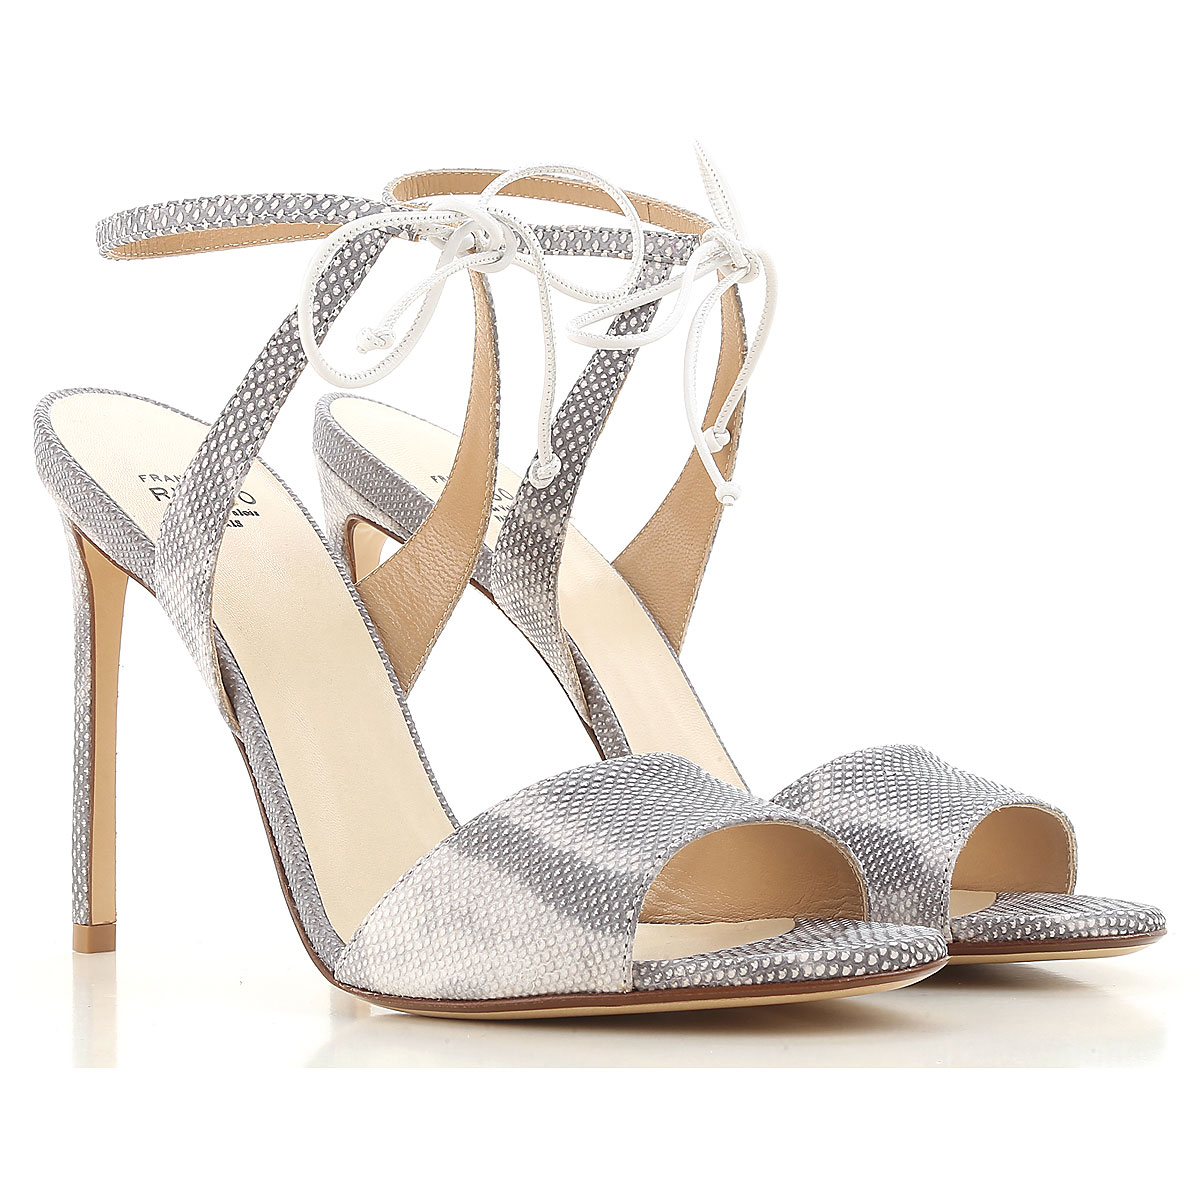 Francesco Russo Sandals for Women On Sale in Outlet, White, Leather, 2019, 8 8.5 9